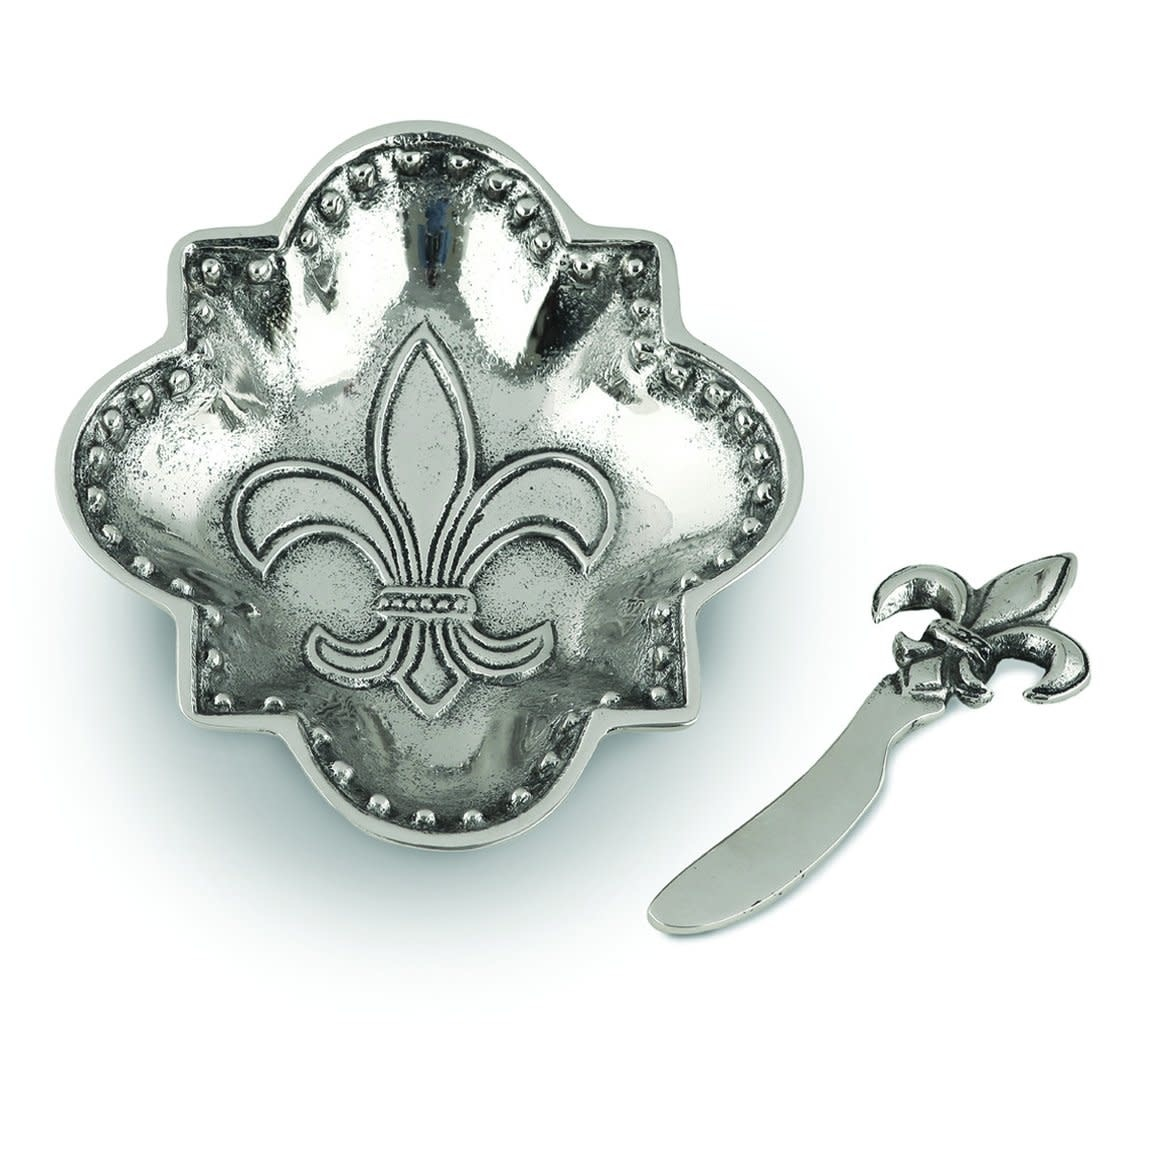 Star Home Designs Fleur De Lis serving dish/spreader